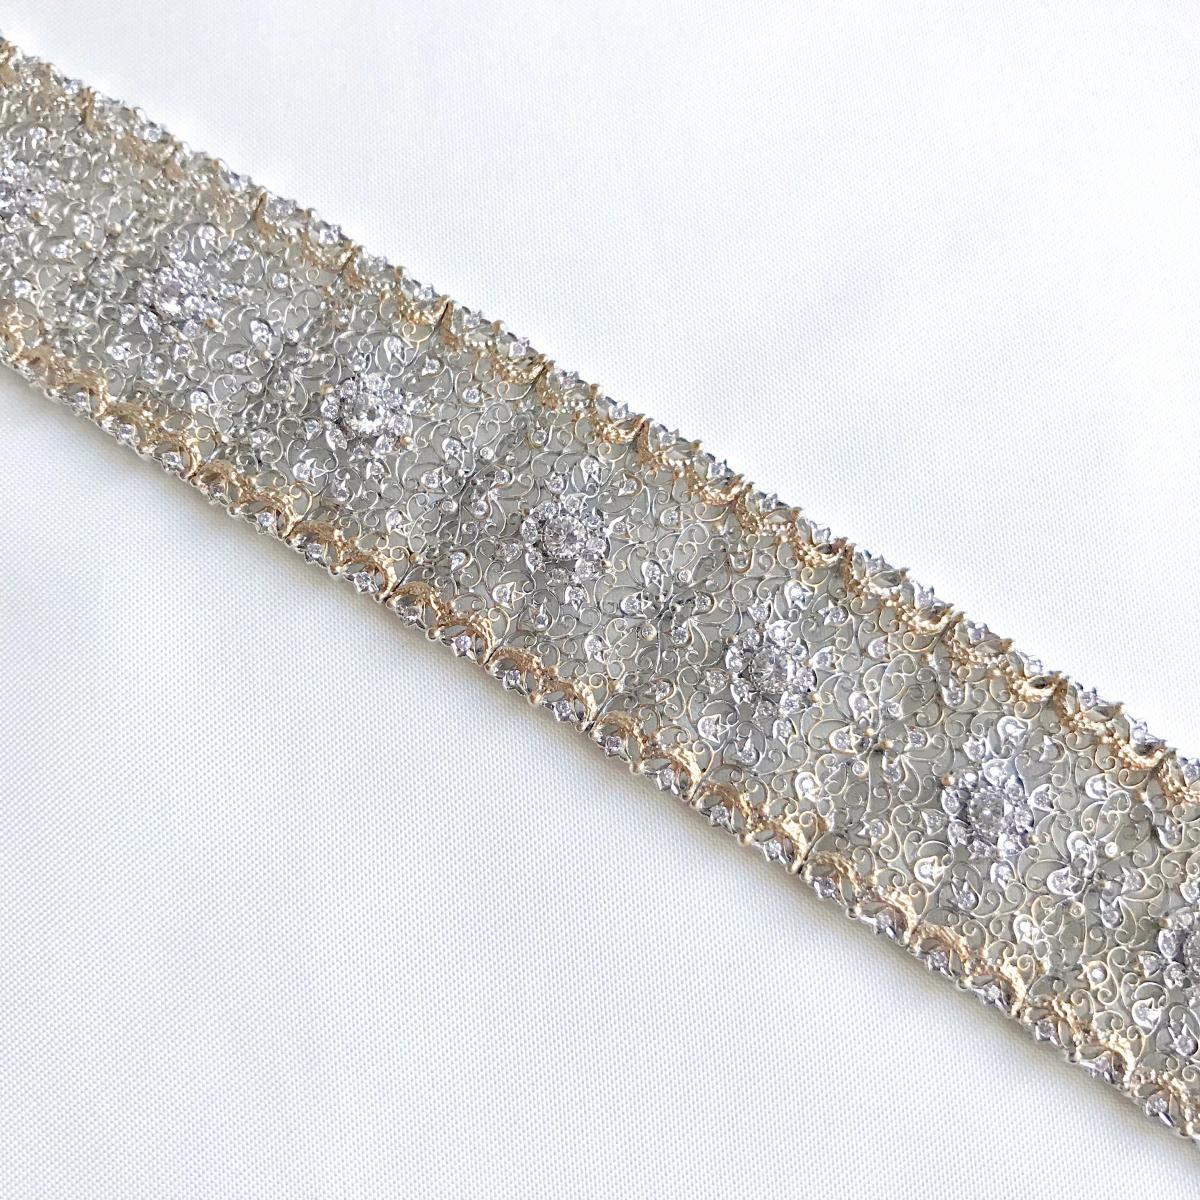 Beautiful Fishnet Bracelet Yellow Gold And White Gold 18 Kt Inlaid With Diamonds-photo-2